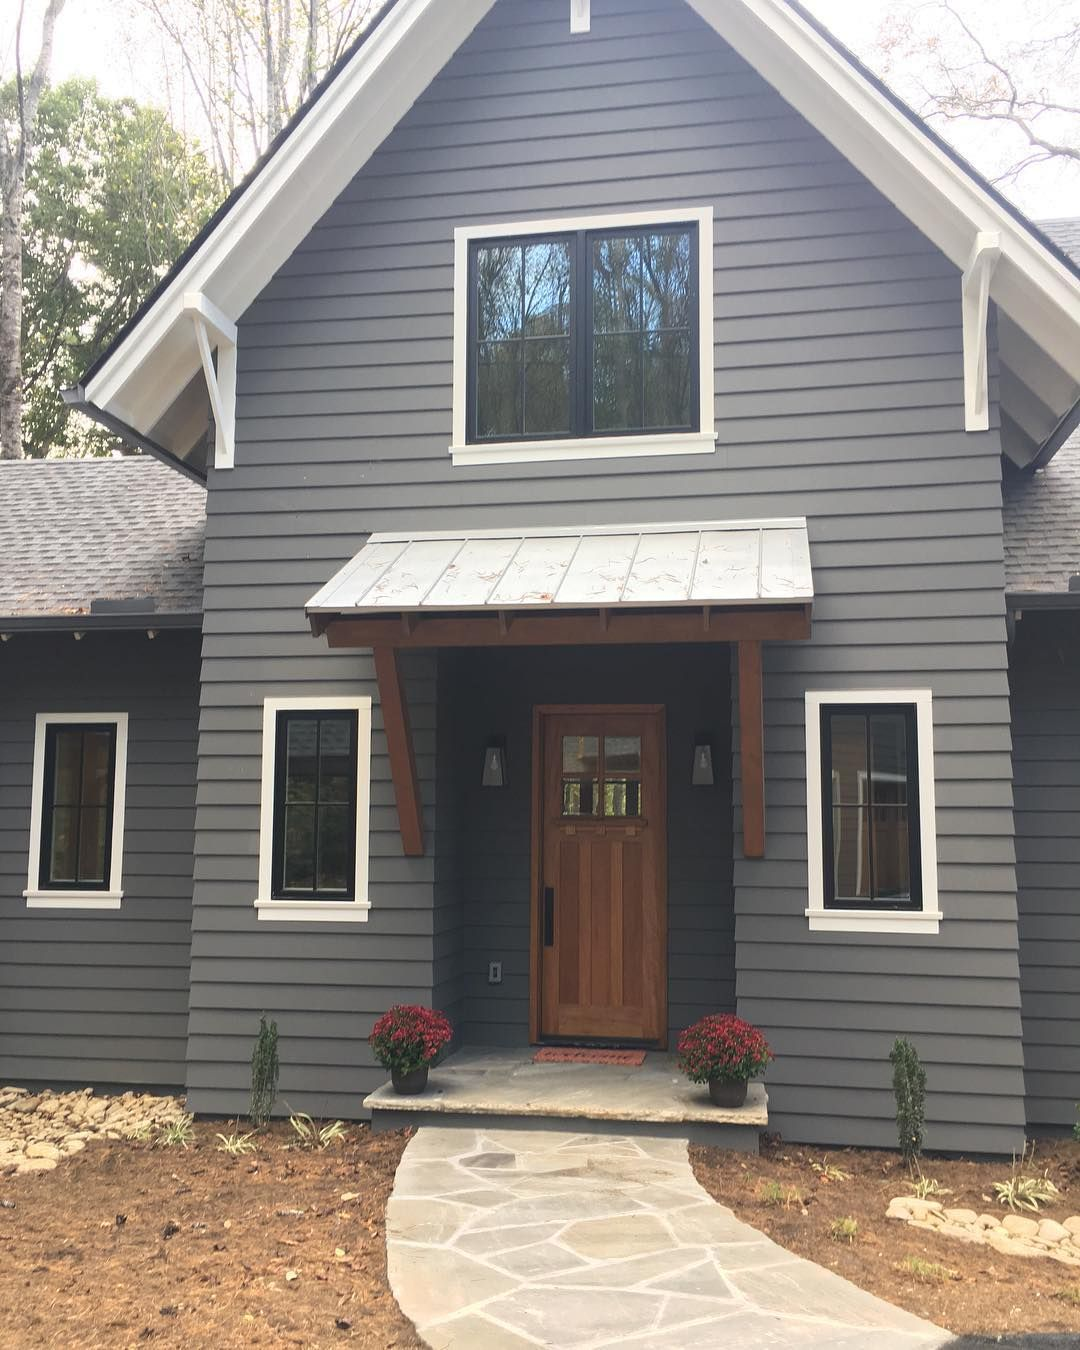 Charcoal Exterior Paint : charcoal, exterior, paint, Benjamin, Moore, Kendall, Charcoal, House, Paint, Exterior,, Exterior, Colors, House,